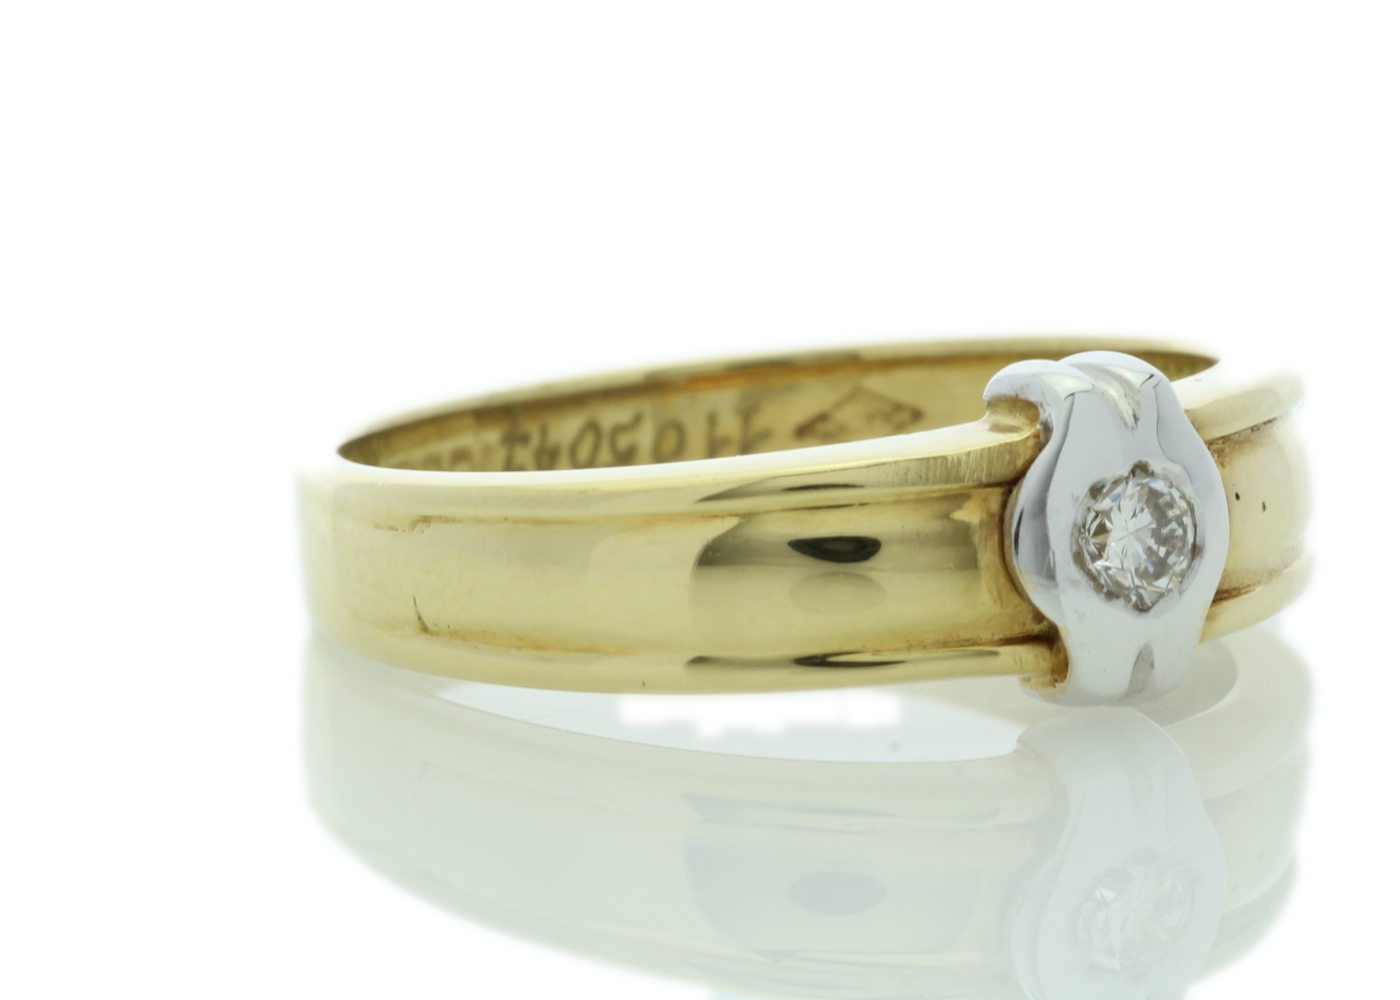 18ct Yellow Gold Rub Over Set Diamond Ring 0.21 Carats - Image 4 of 5